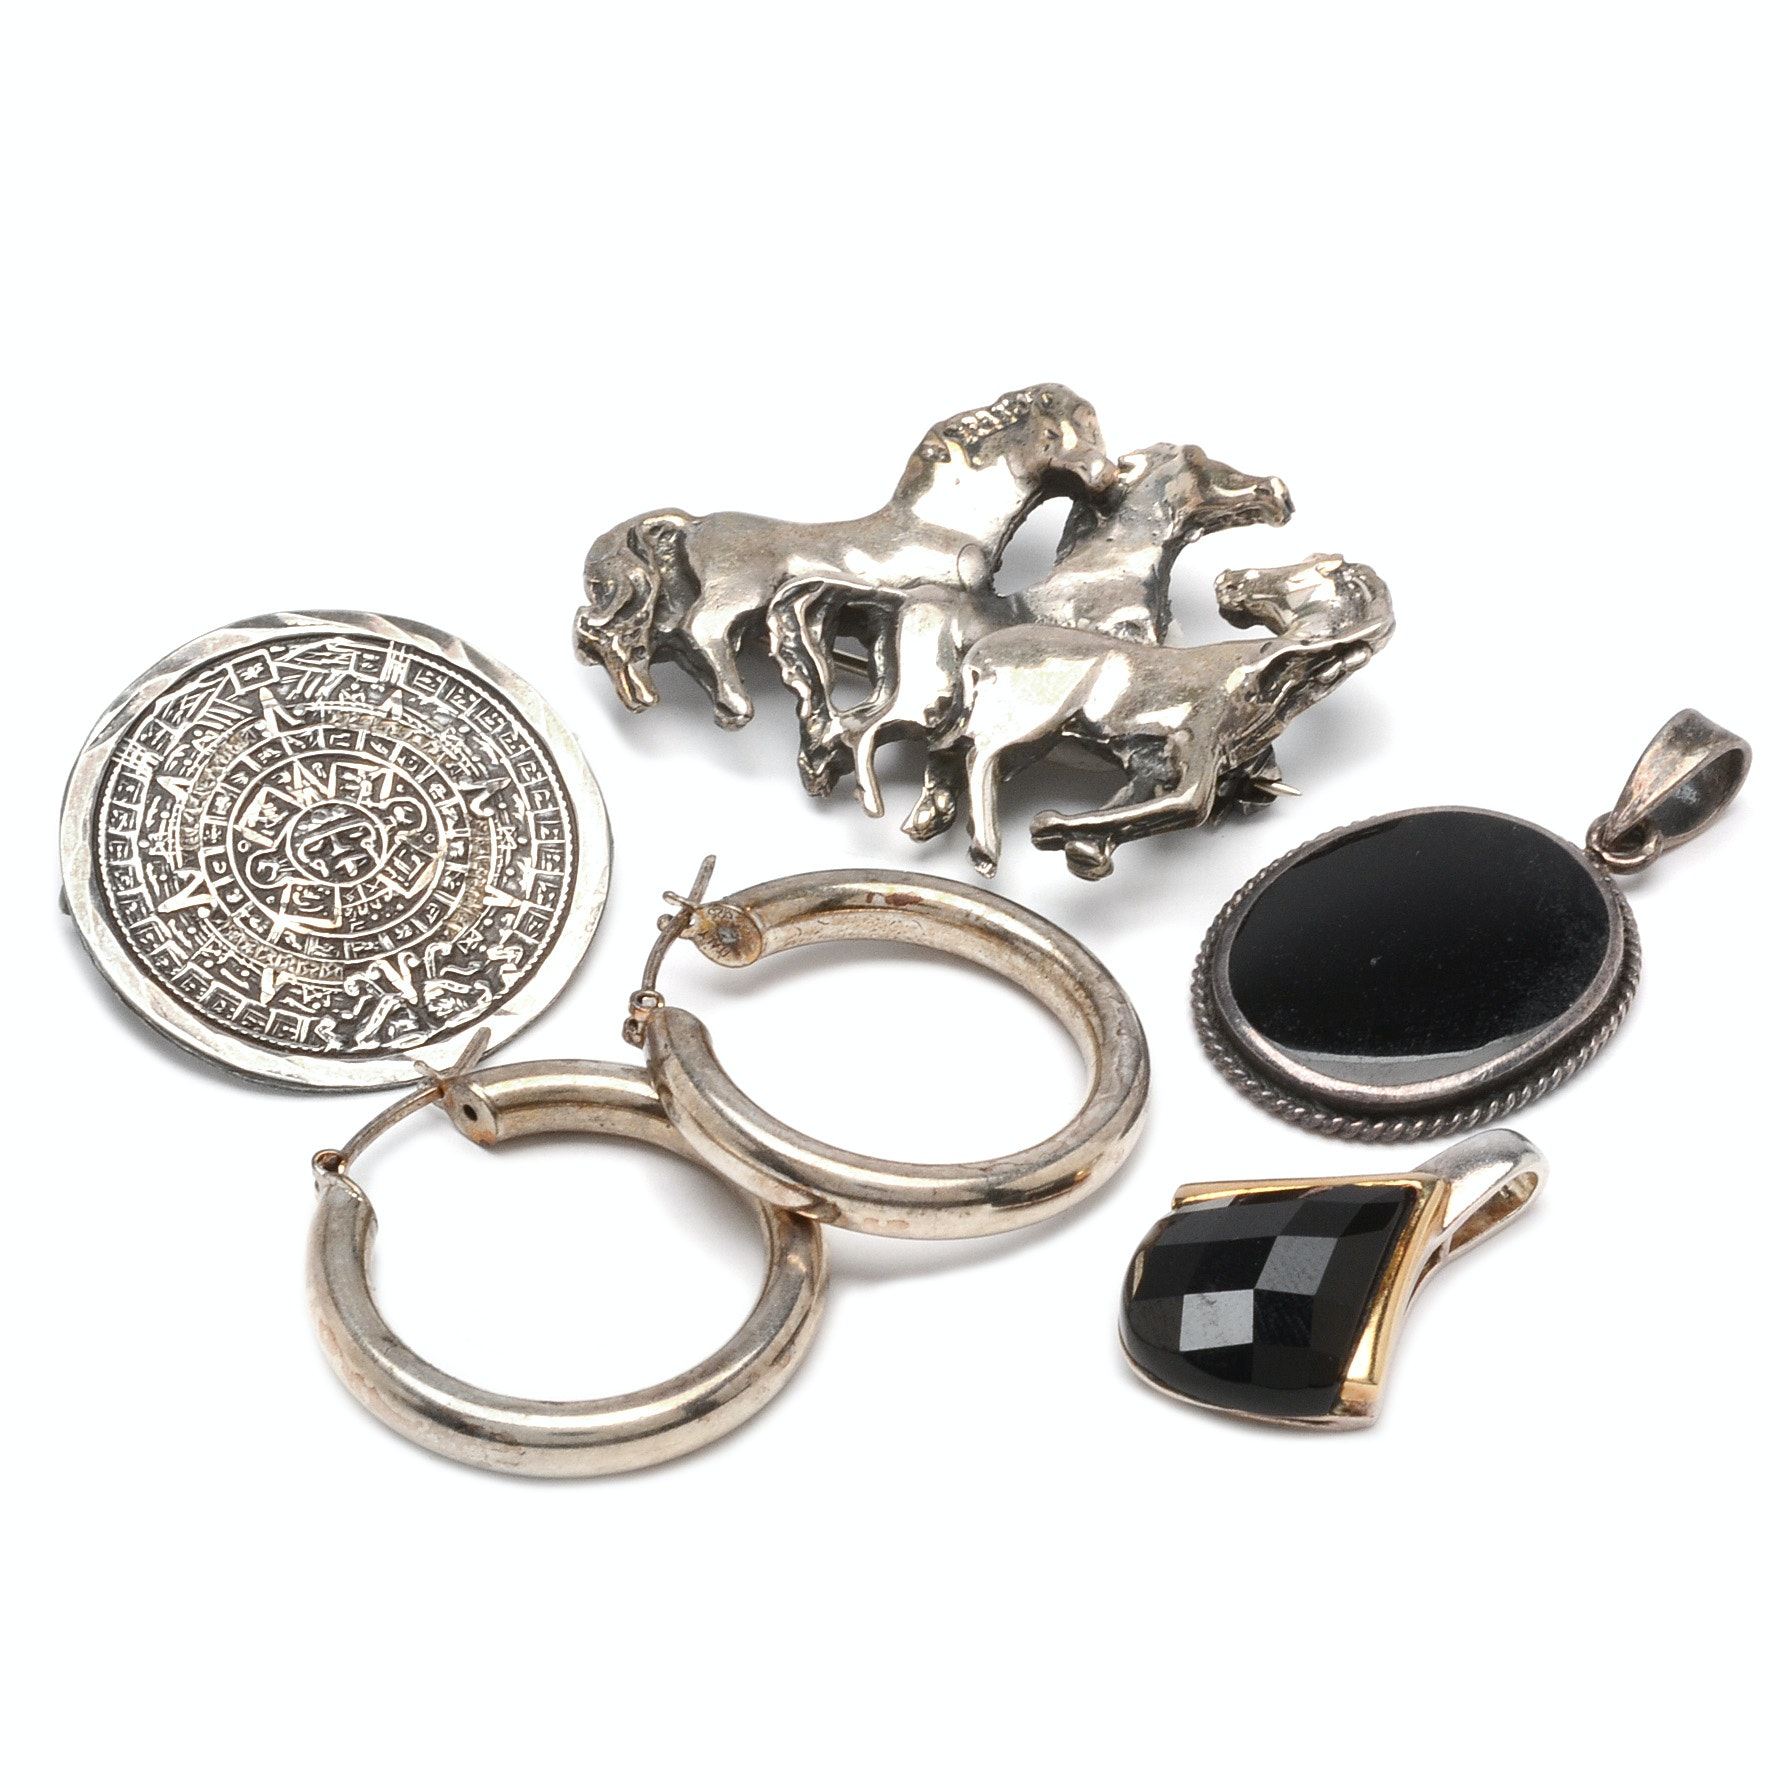 Vintage Sterling Silver Jewelry Assortment